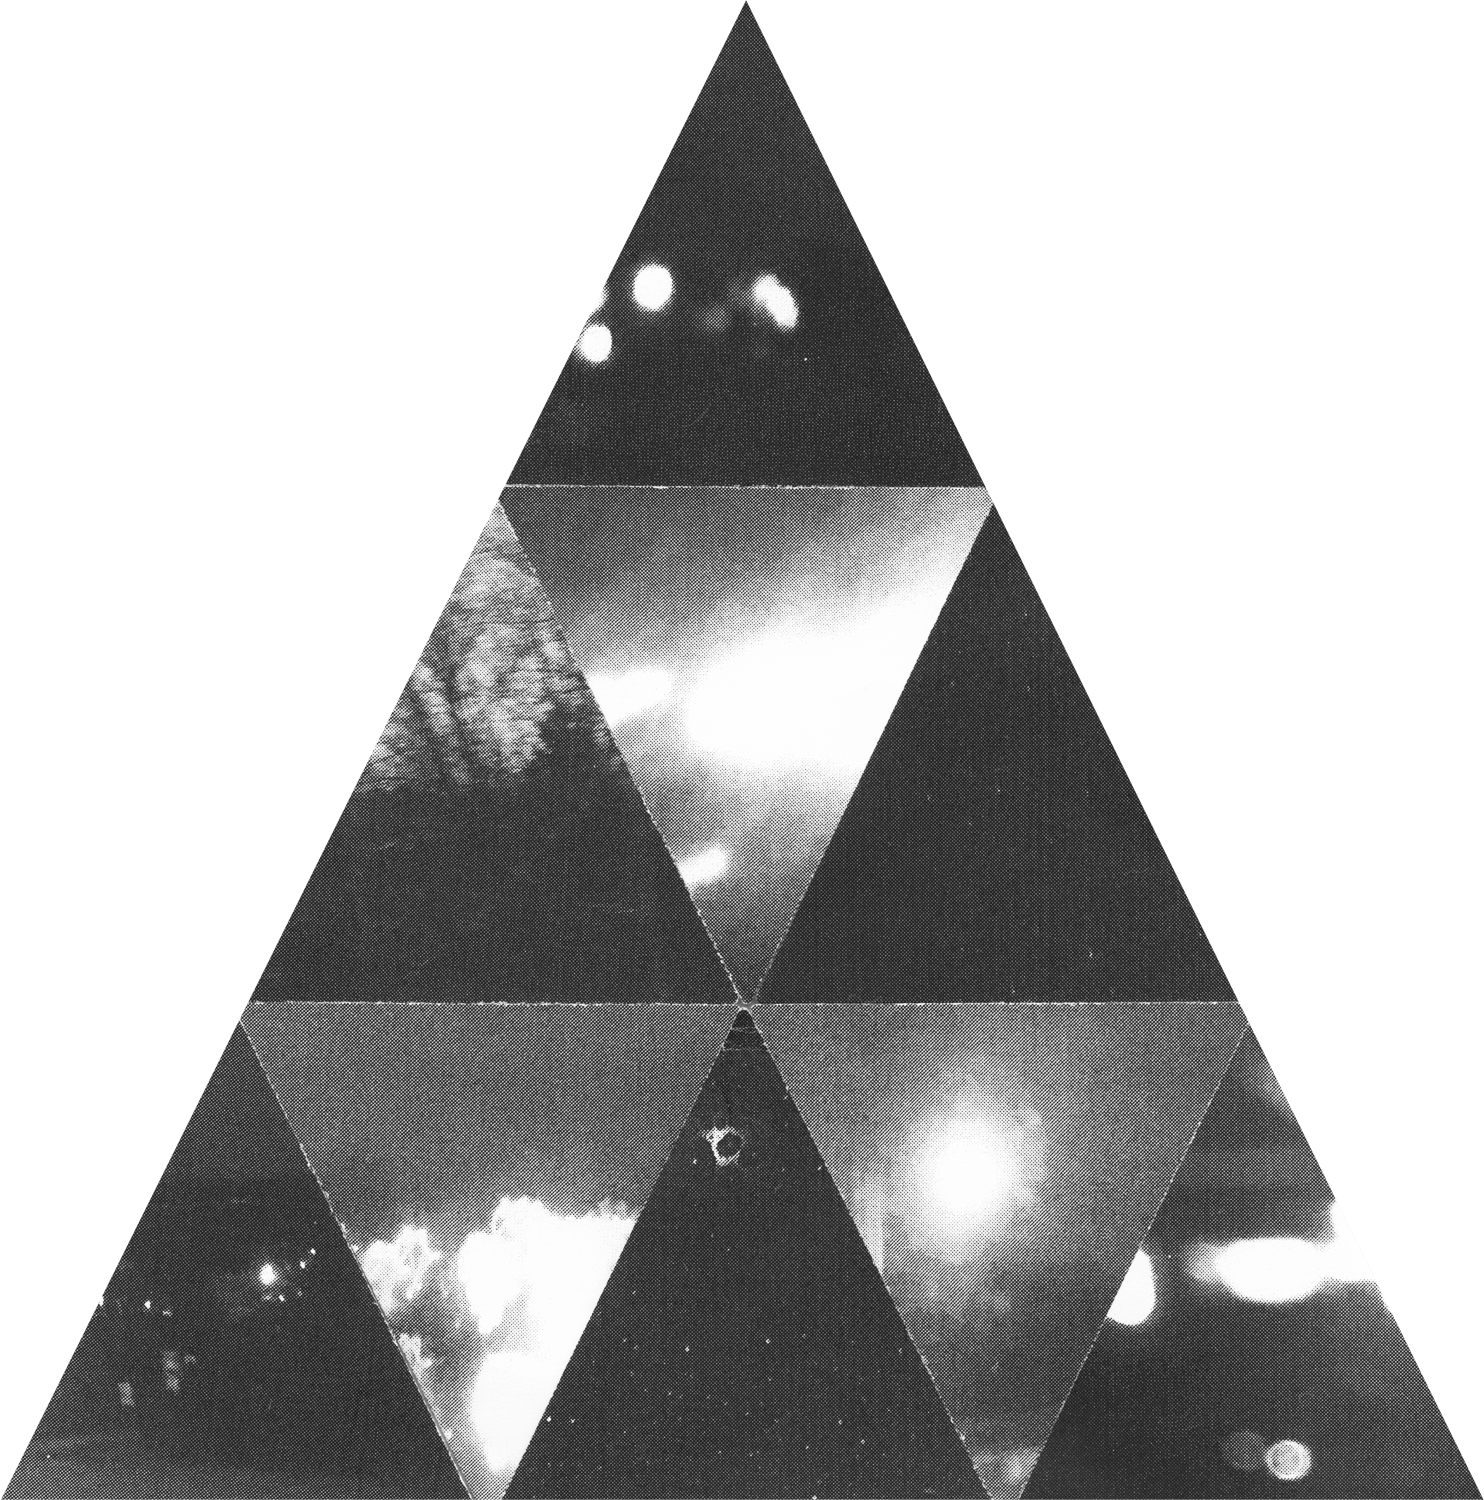 Triangle_Collages_FalloutShelter_Crop&Trim.png